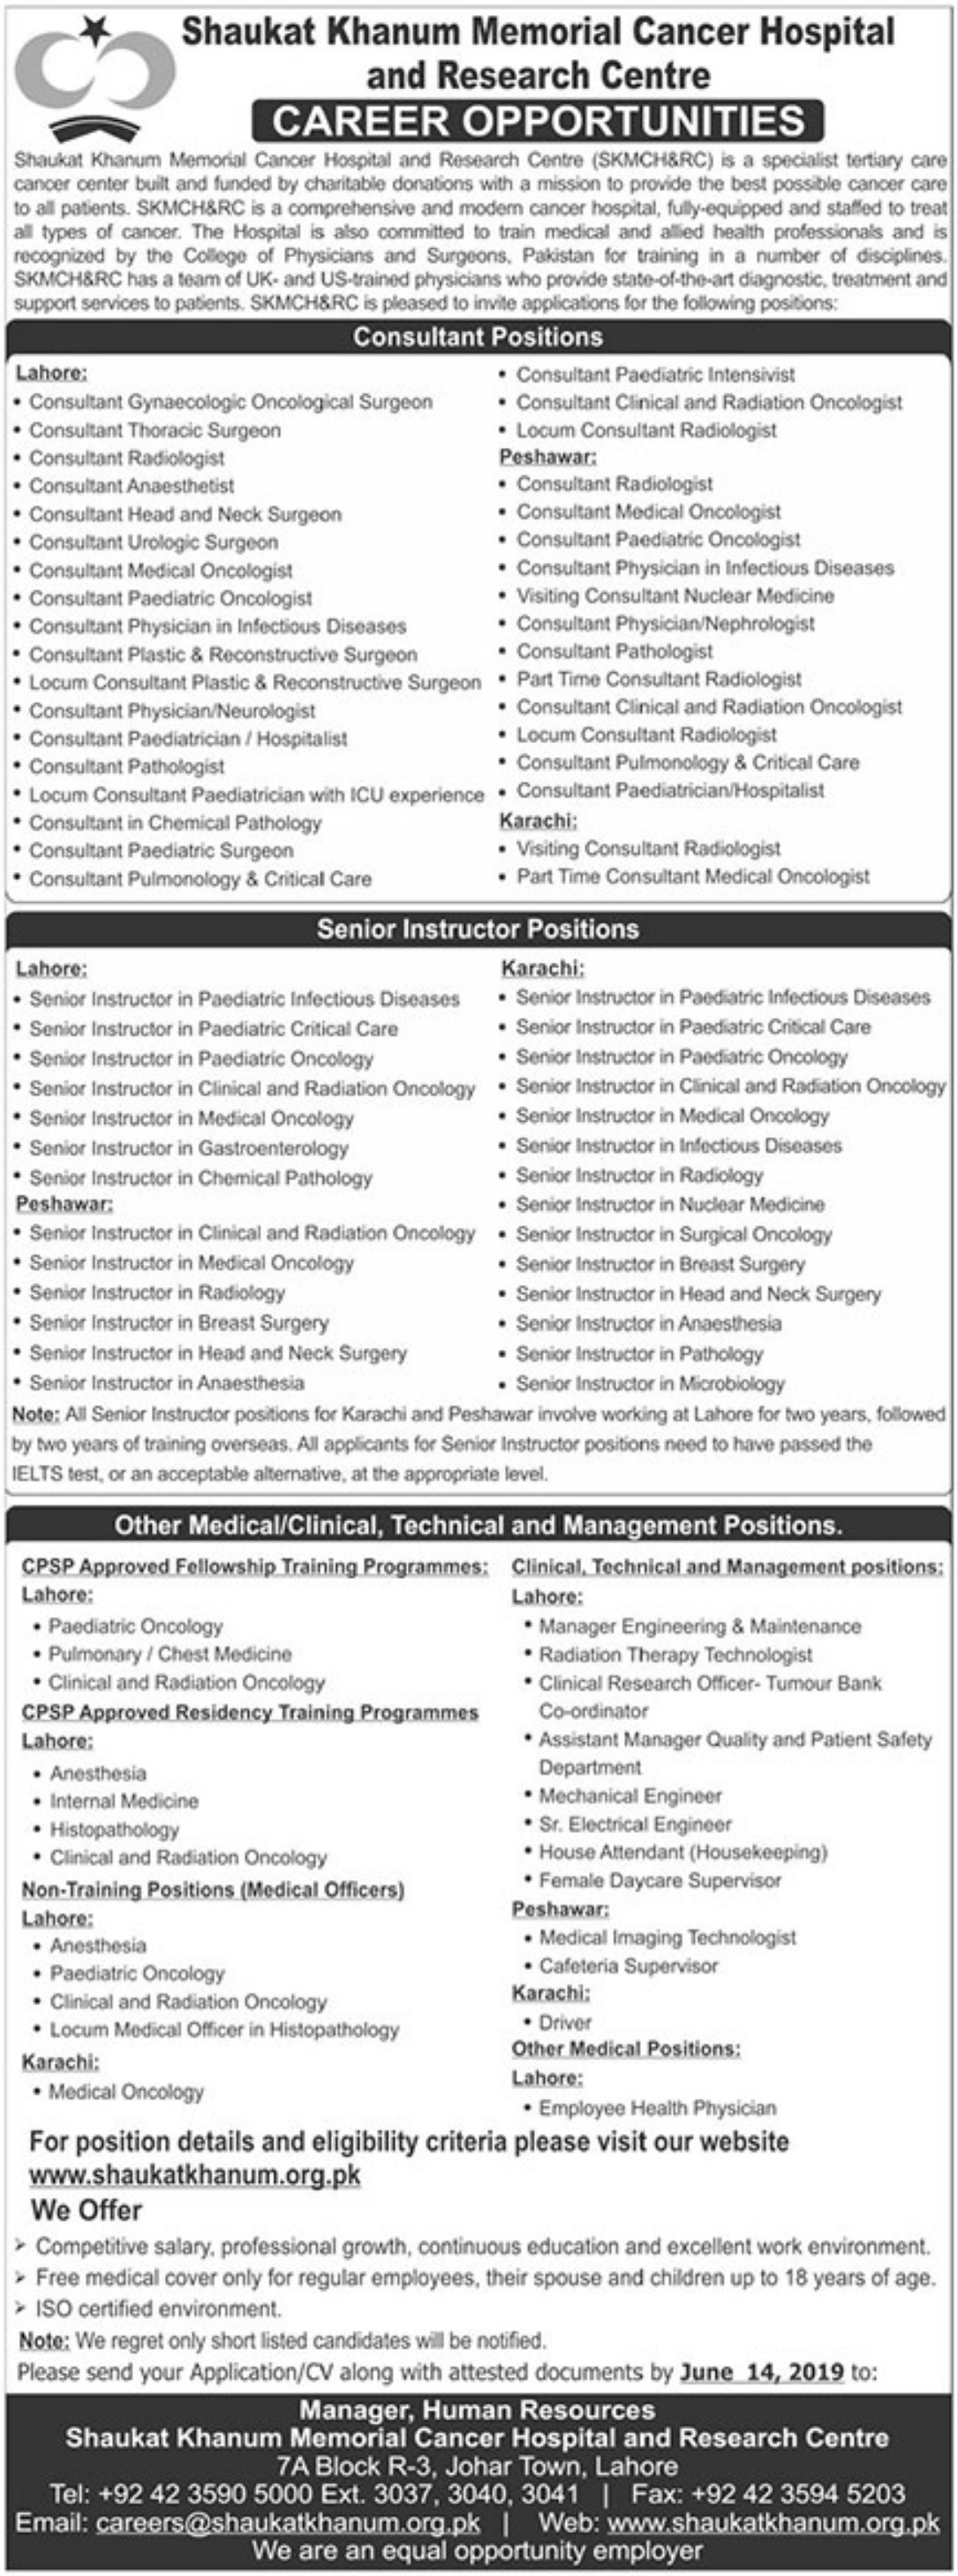 Shaukat Khanum Memorial Cancer Hospital and Research Centre Jobs